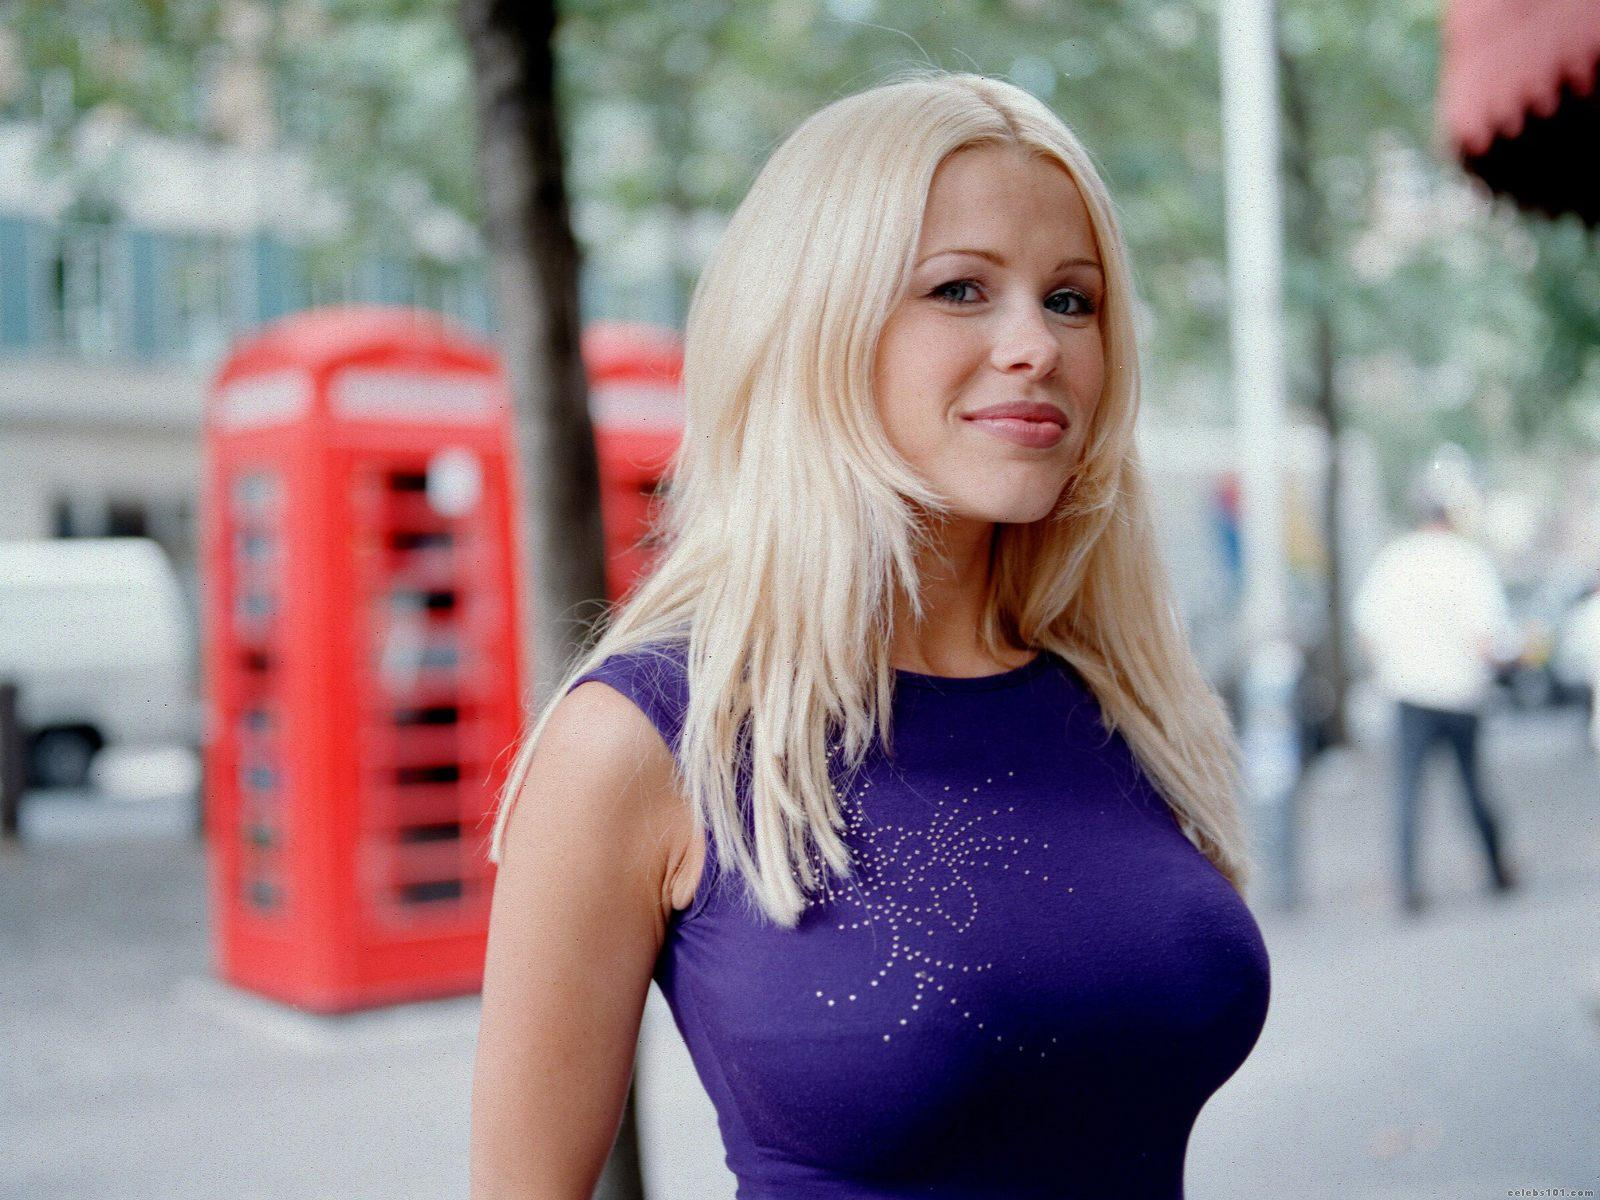 melinda messenger bet on dancing on ice pictures